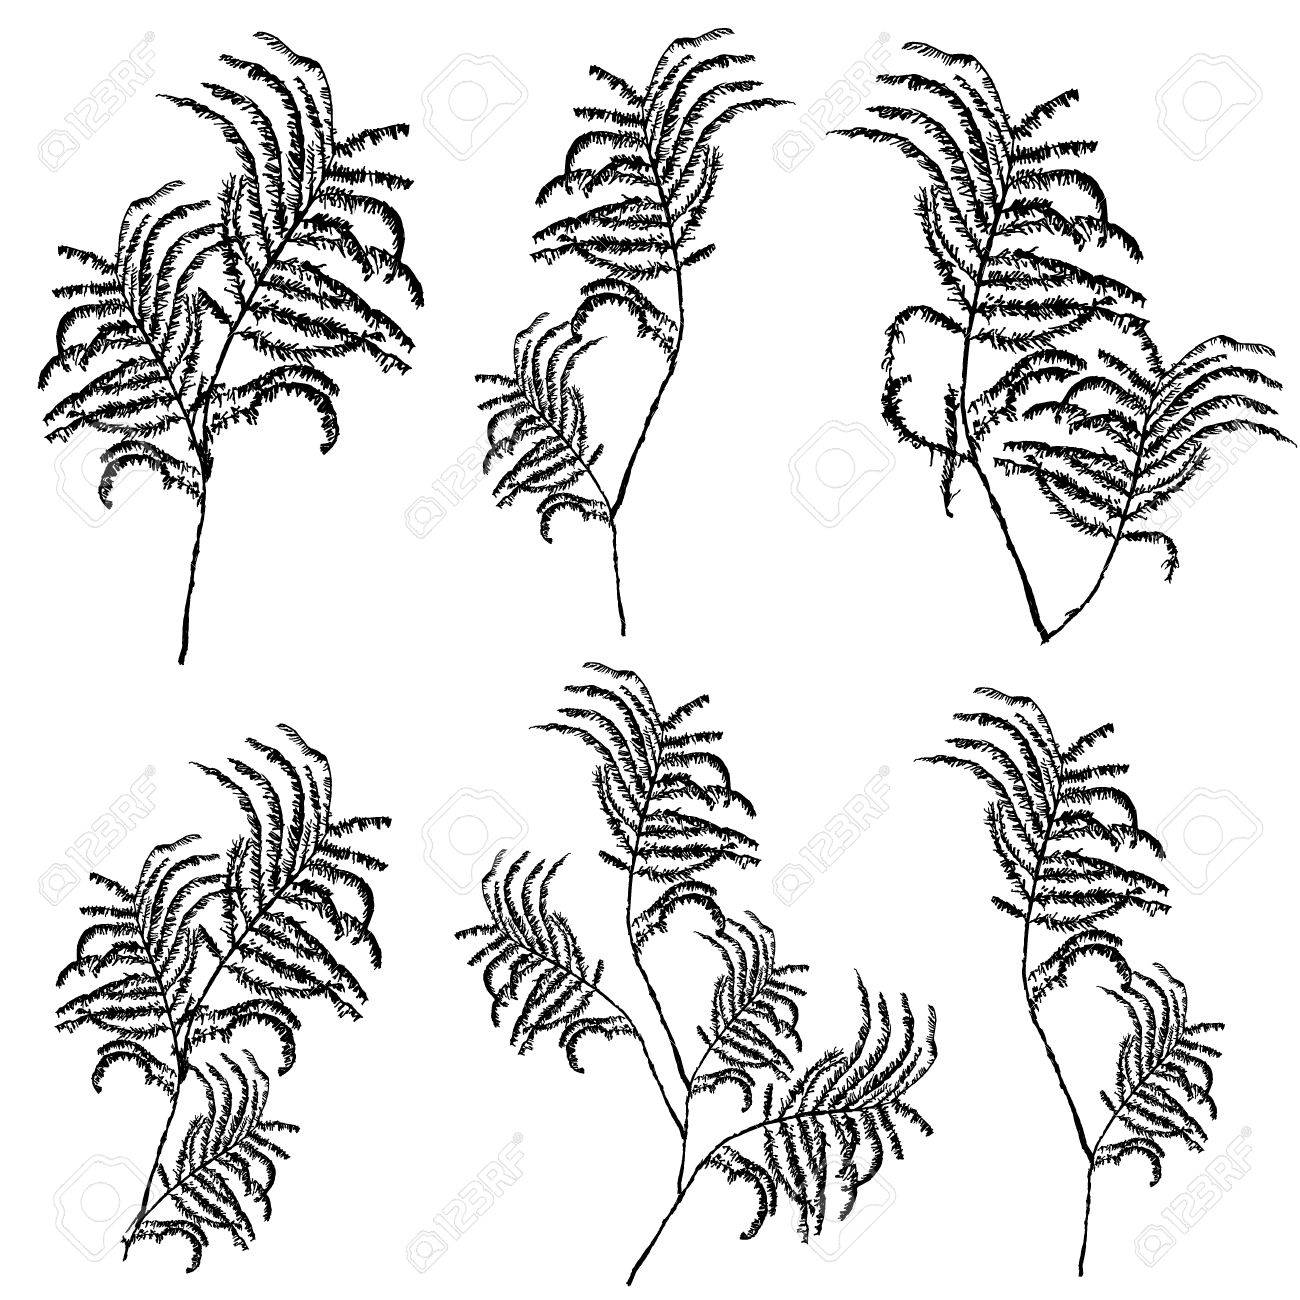 1300x1300 Silhouettes Of Leaves, Botanical Illustration Isolated On White